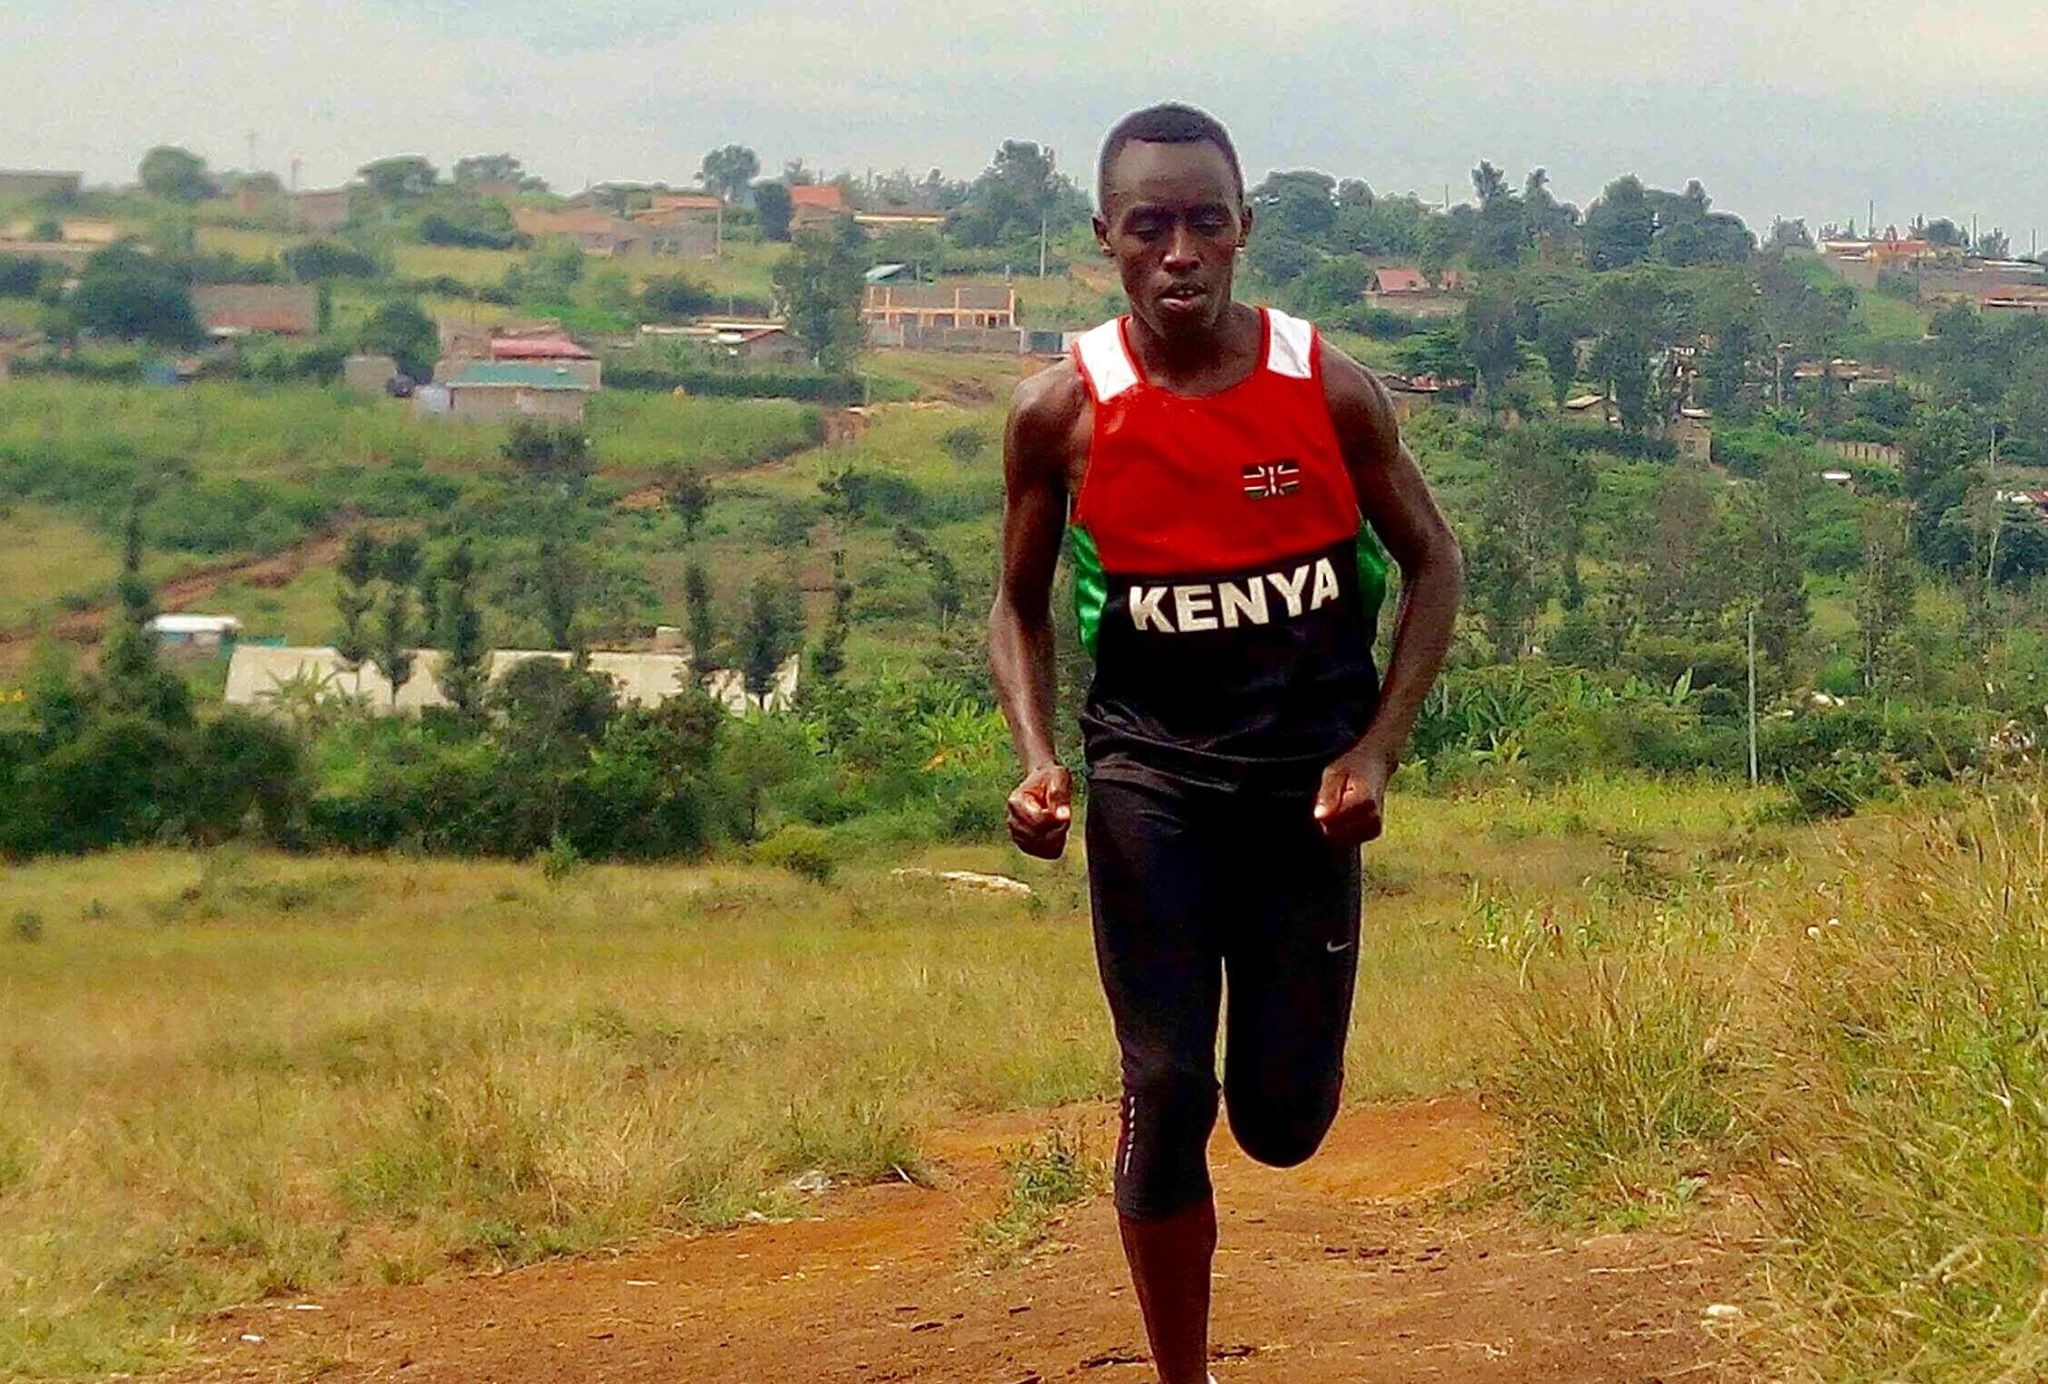 Global Run Challenge Profile: Willie Korir says of this challenge, It builds a strong bond and love for running around the Global